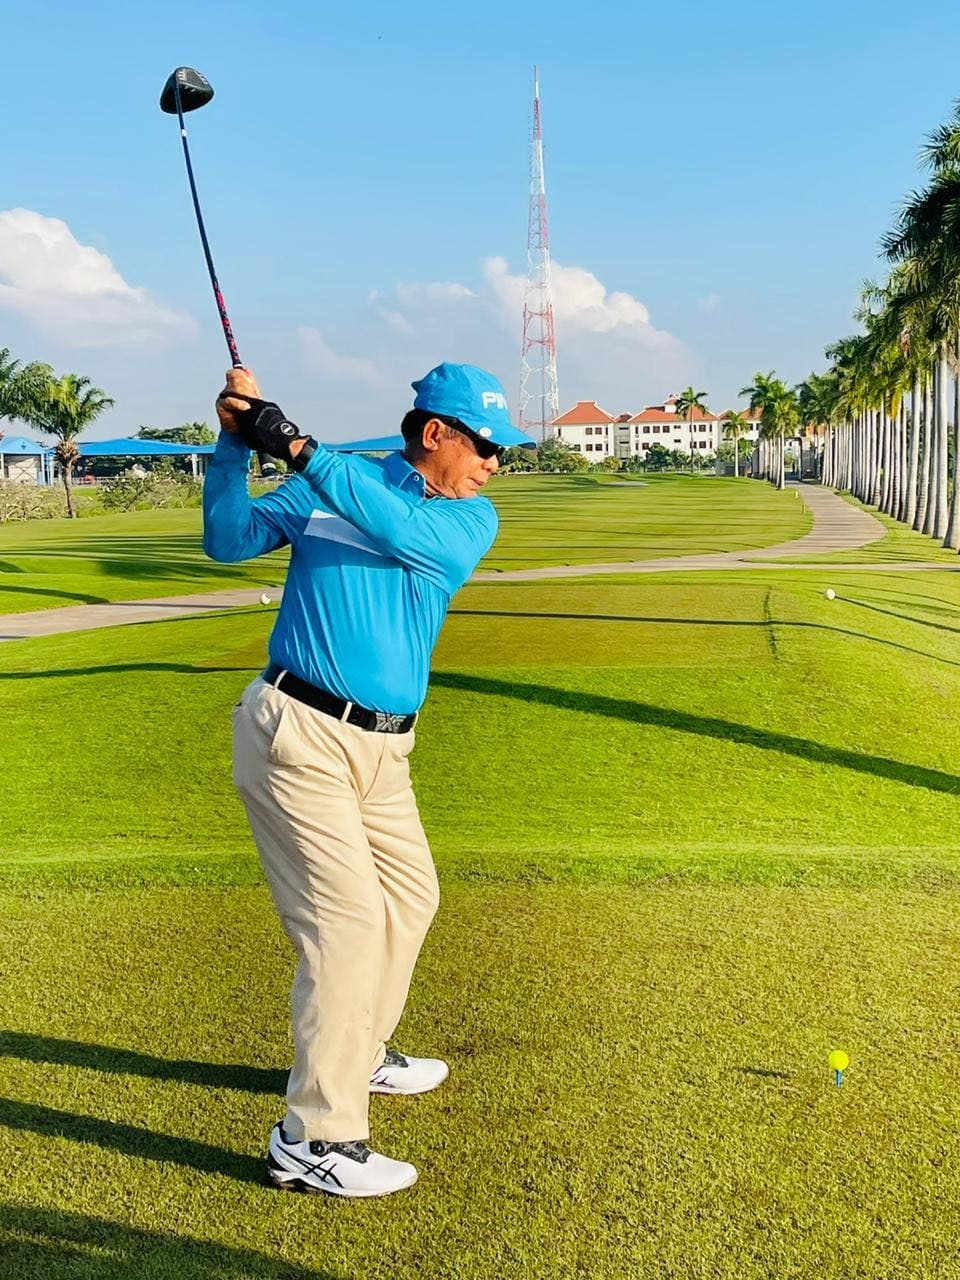 Prime Minister played golf Thursday morning, according to photos posted to his Facebook page, after completing 14 days of quarantine because he was exposed to a visiting Hungarian dignitary who was COVID-19 positive.